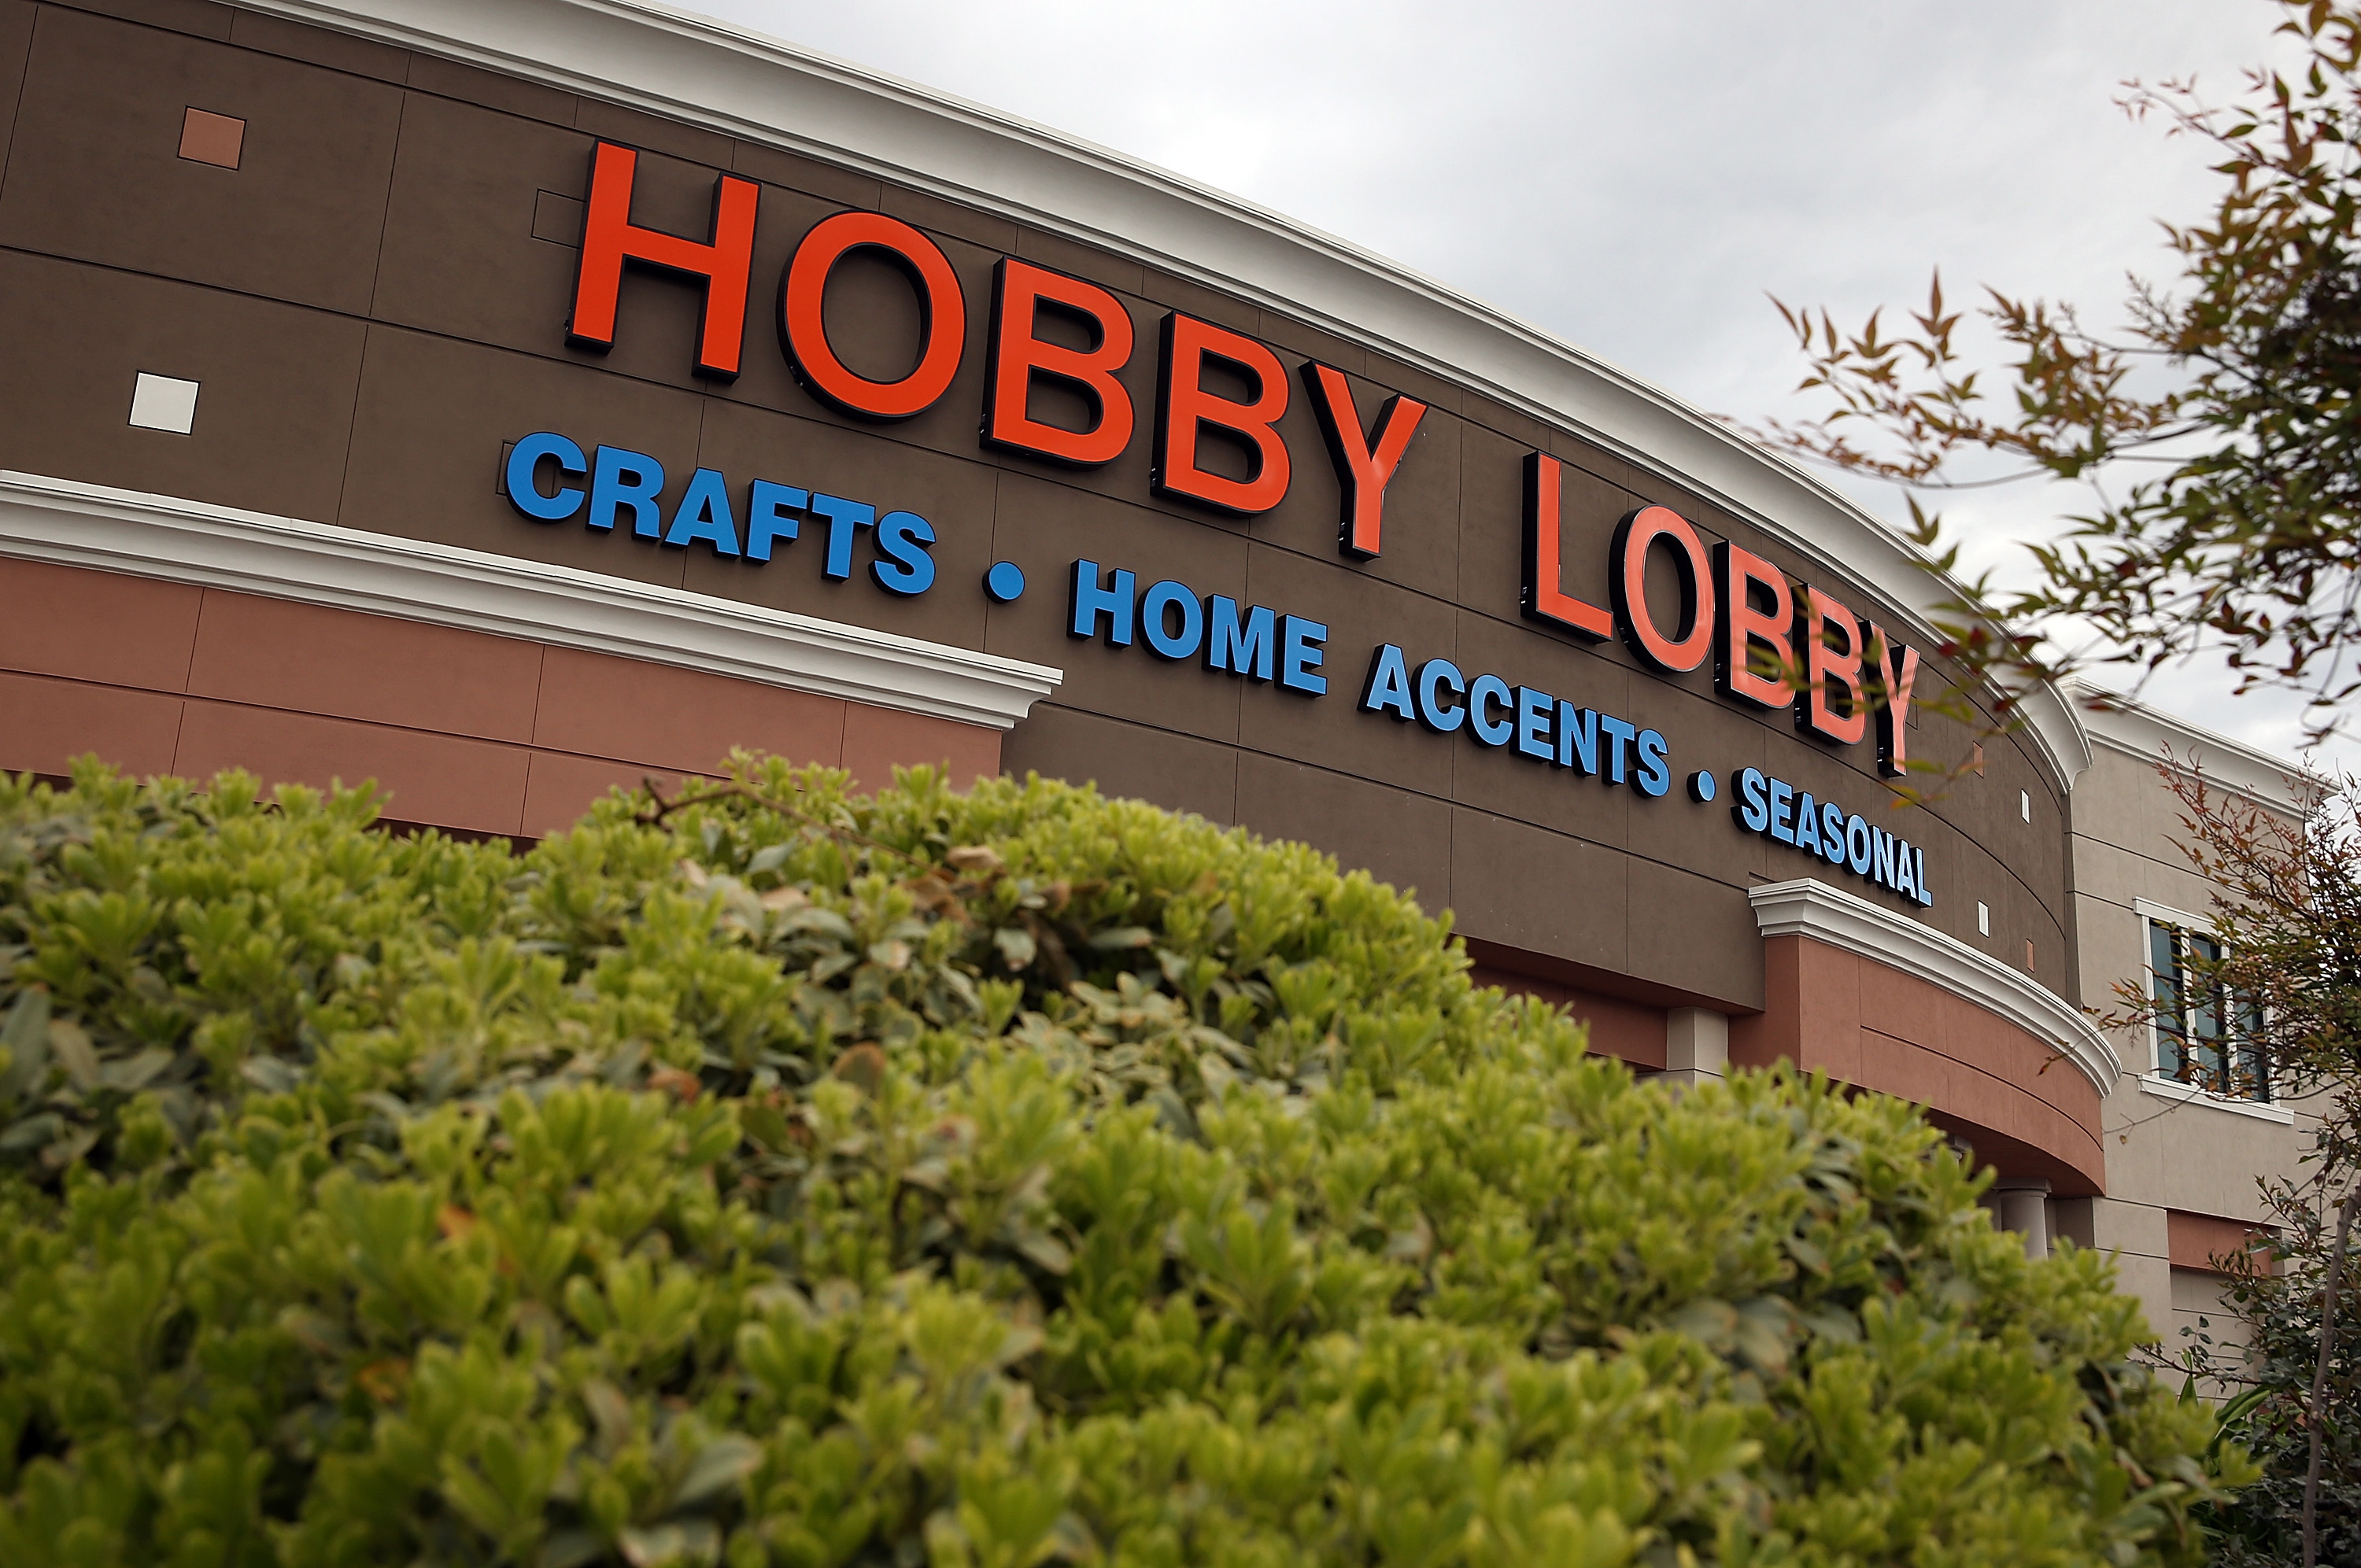 Hobby Lobby At Center Of Supreme Court Case Against Affordable Care Act Birth Control Clause